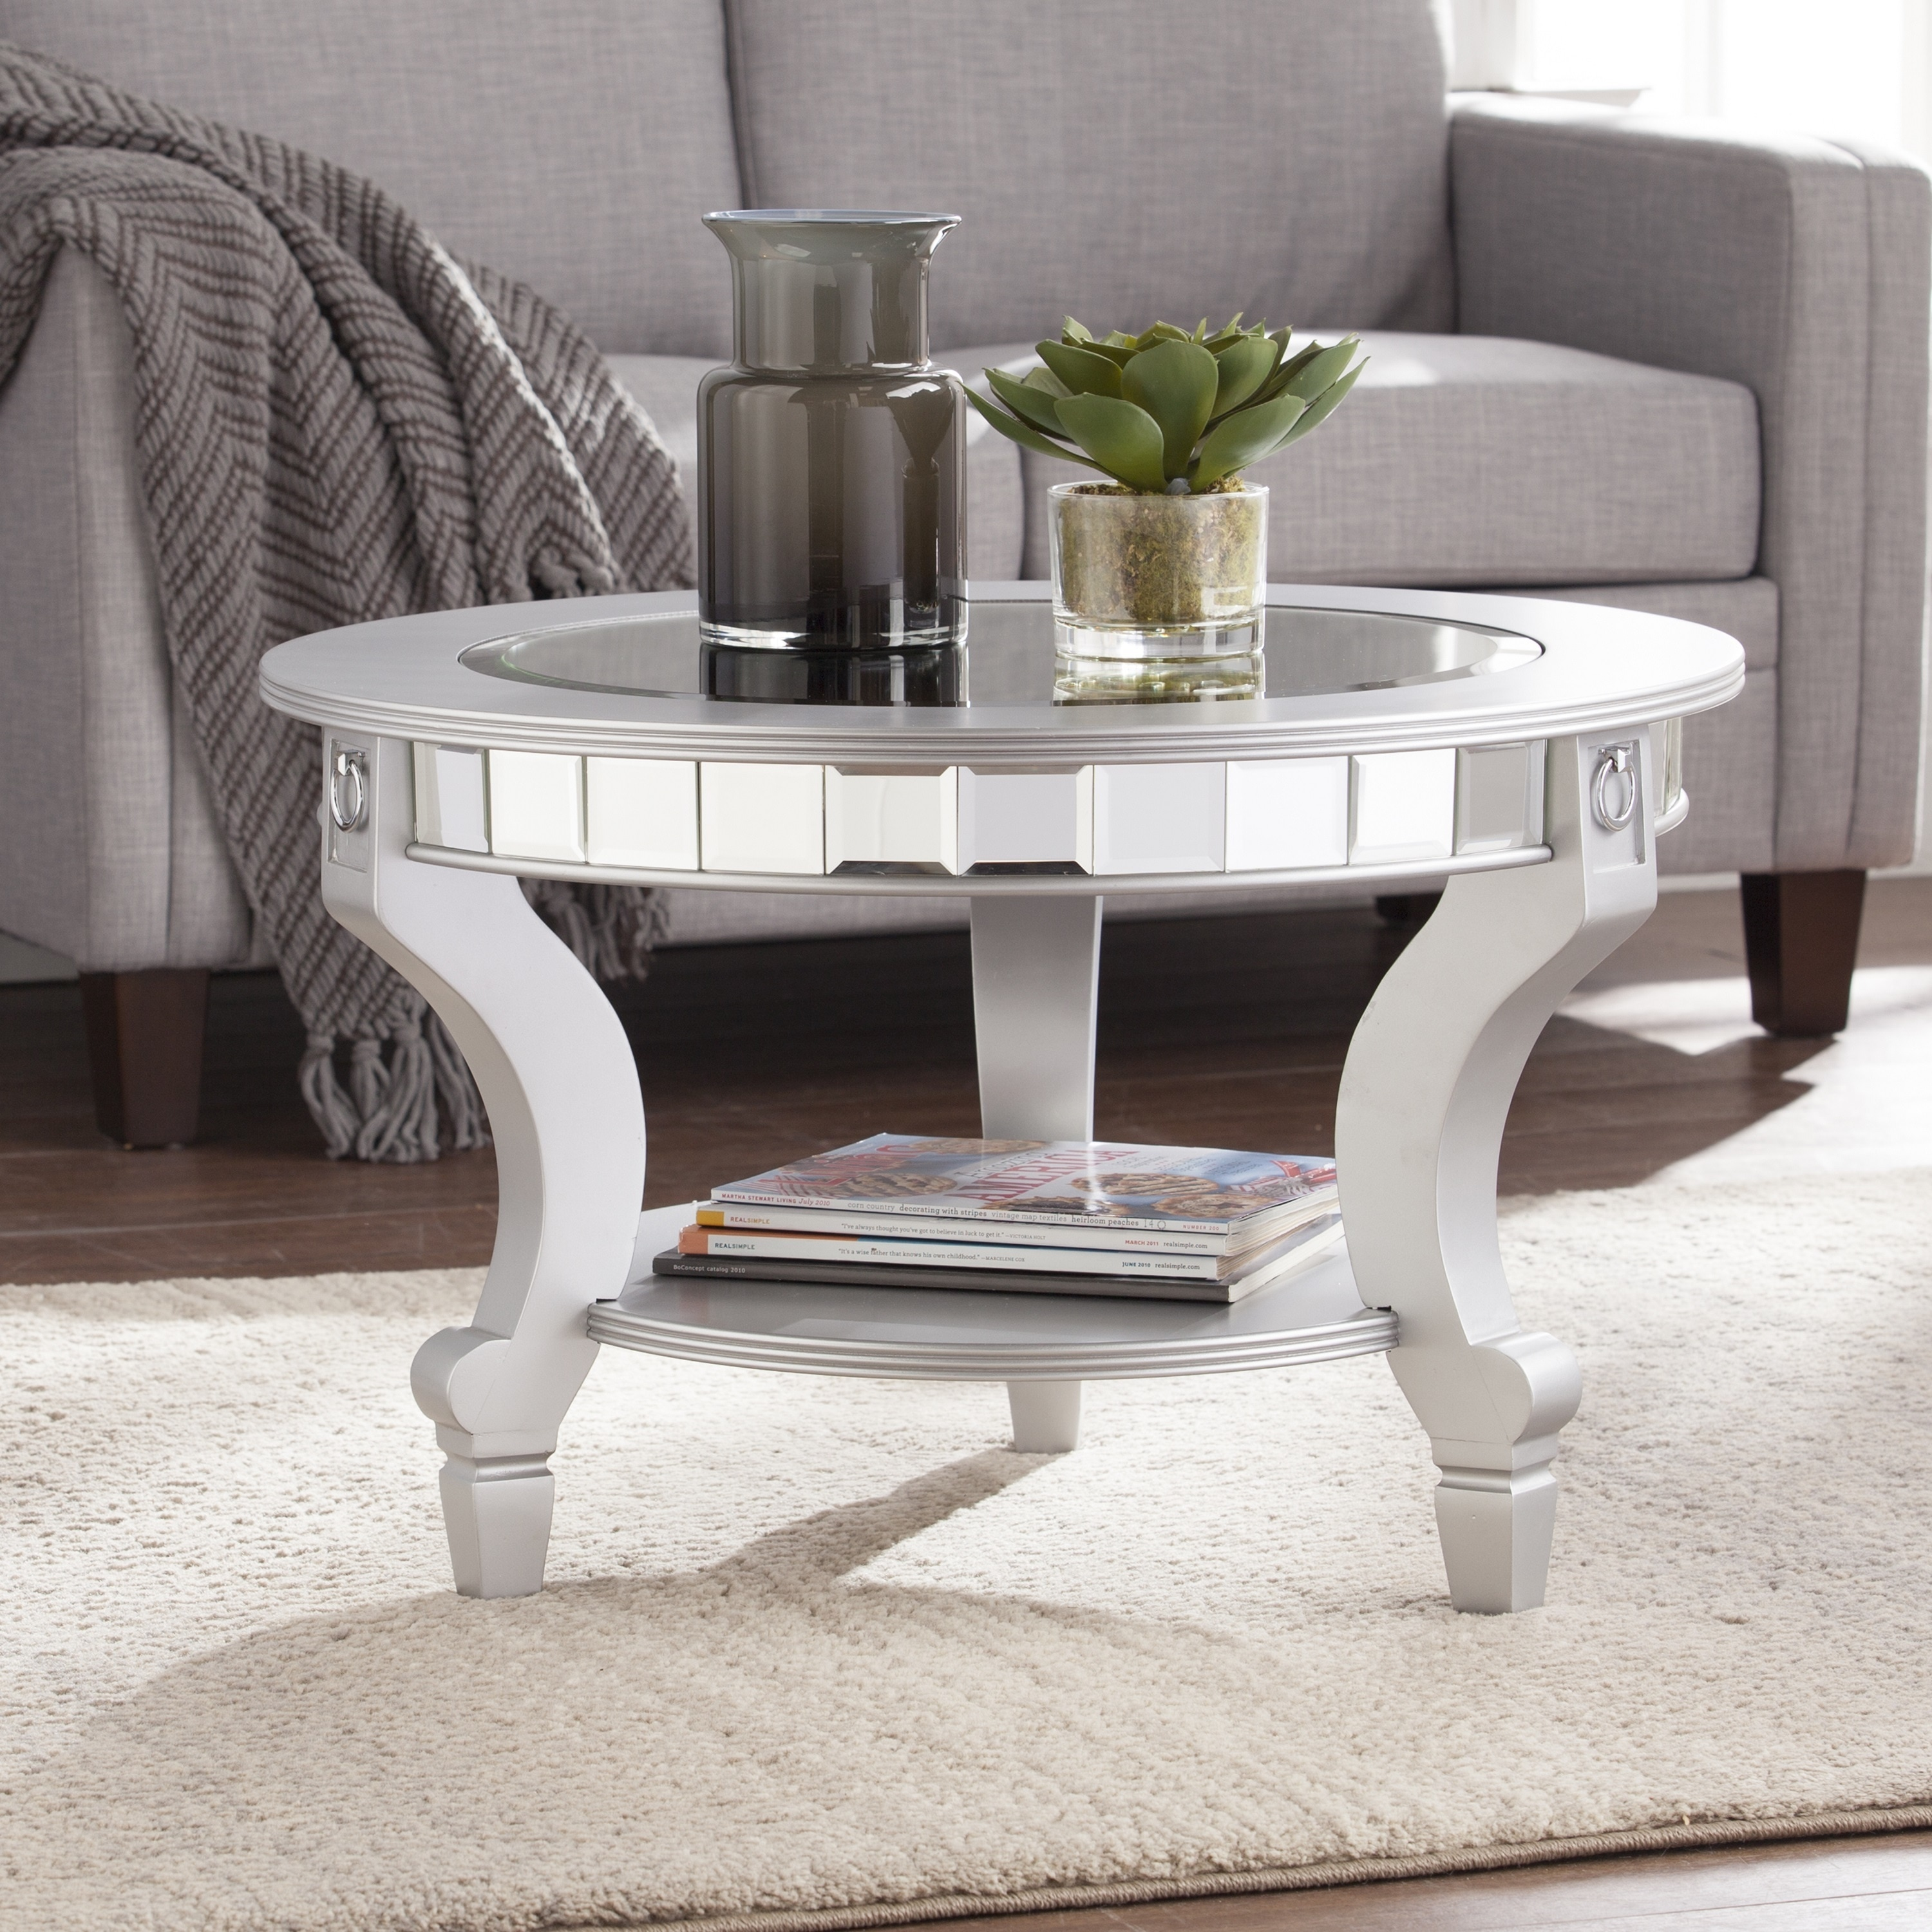 Silver Orchid Olivia Glam Mirrored Round Cocktail Table   Matte Silver